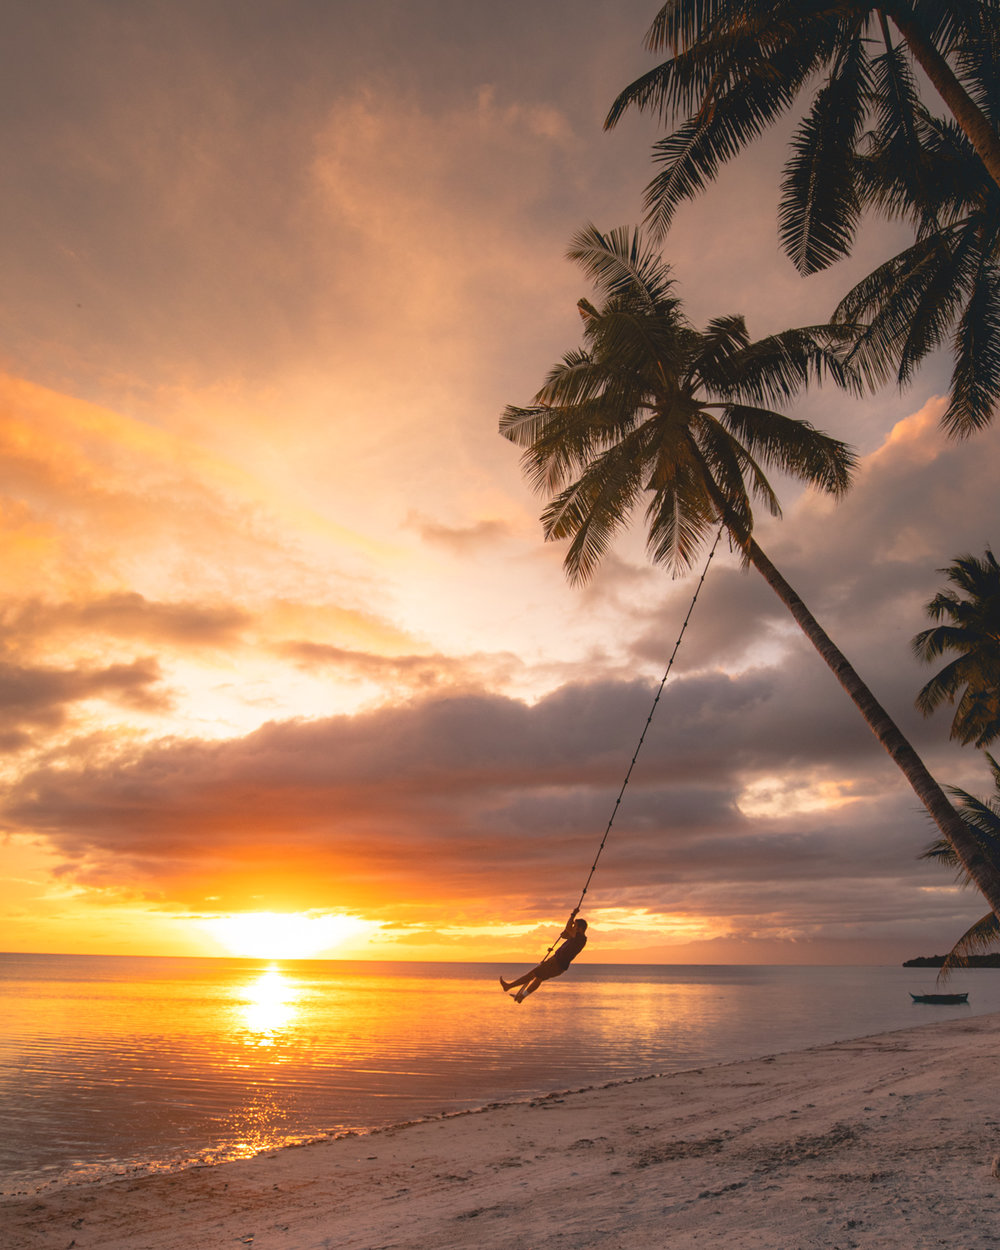 The swing at Coral Cay Resort at Sunset in Siquijor